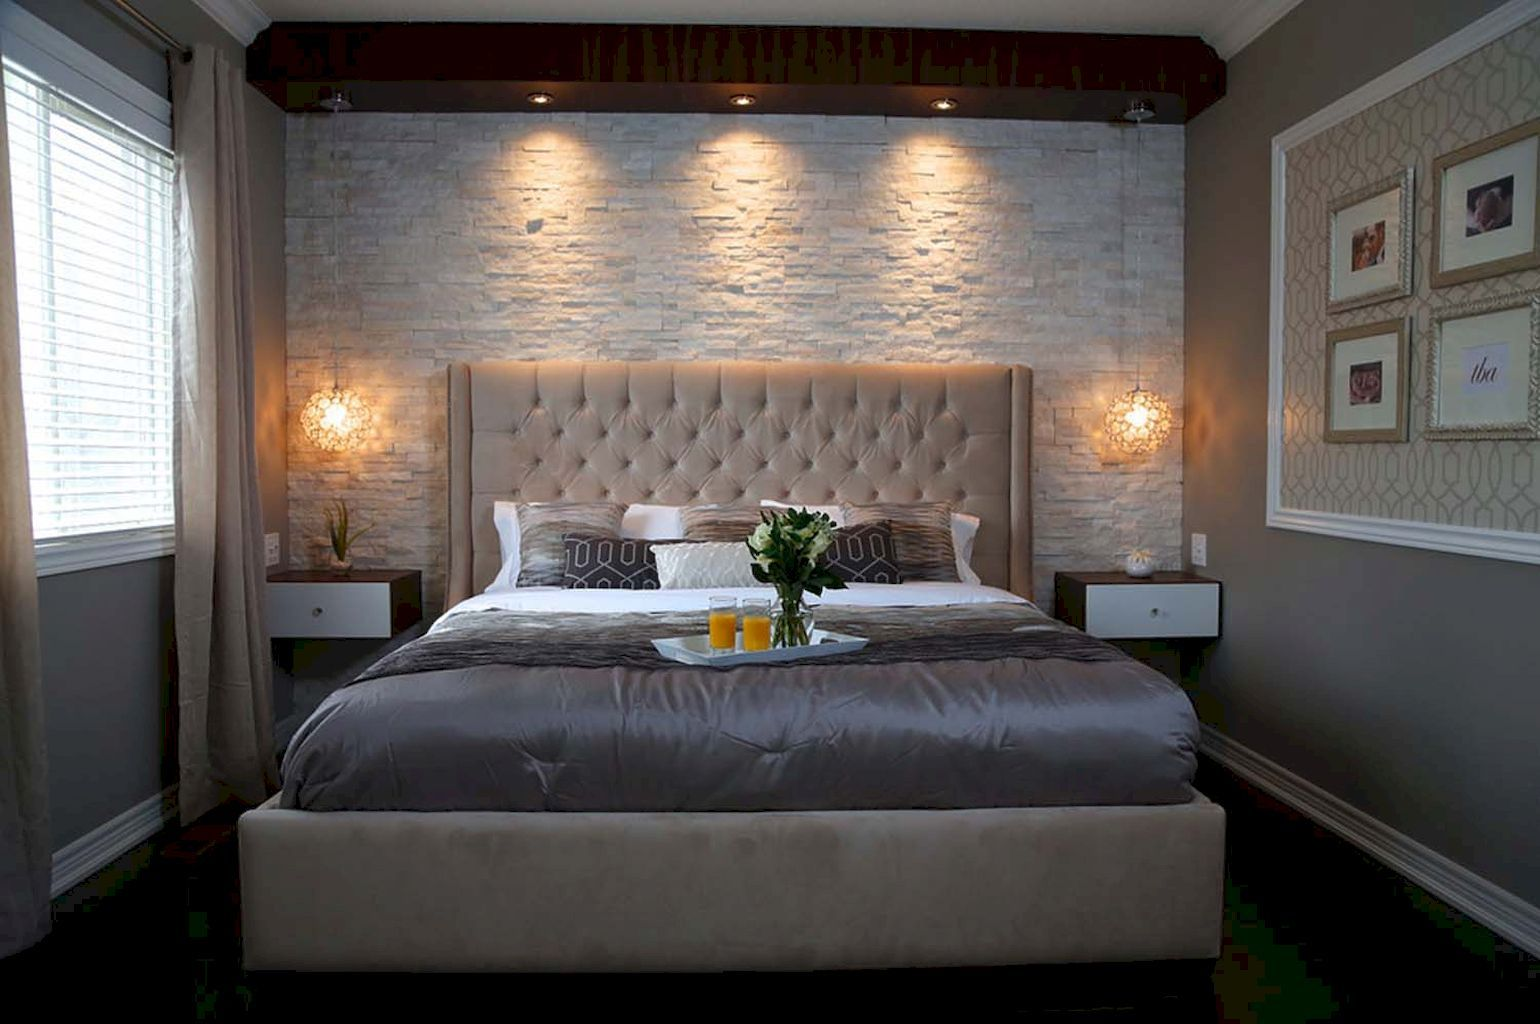 Large master bedroom decor ideas   Incredible Master Bedroom Interior Designs  Master bedroom